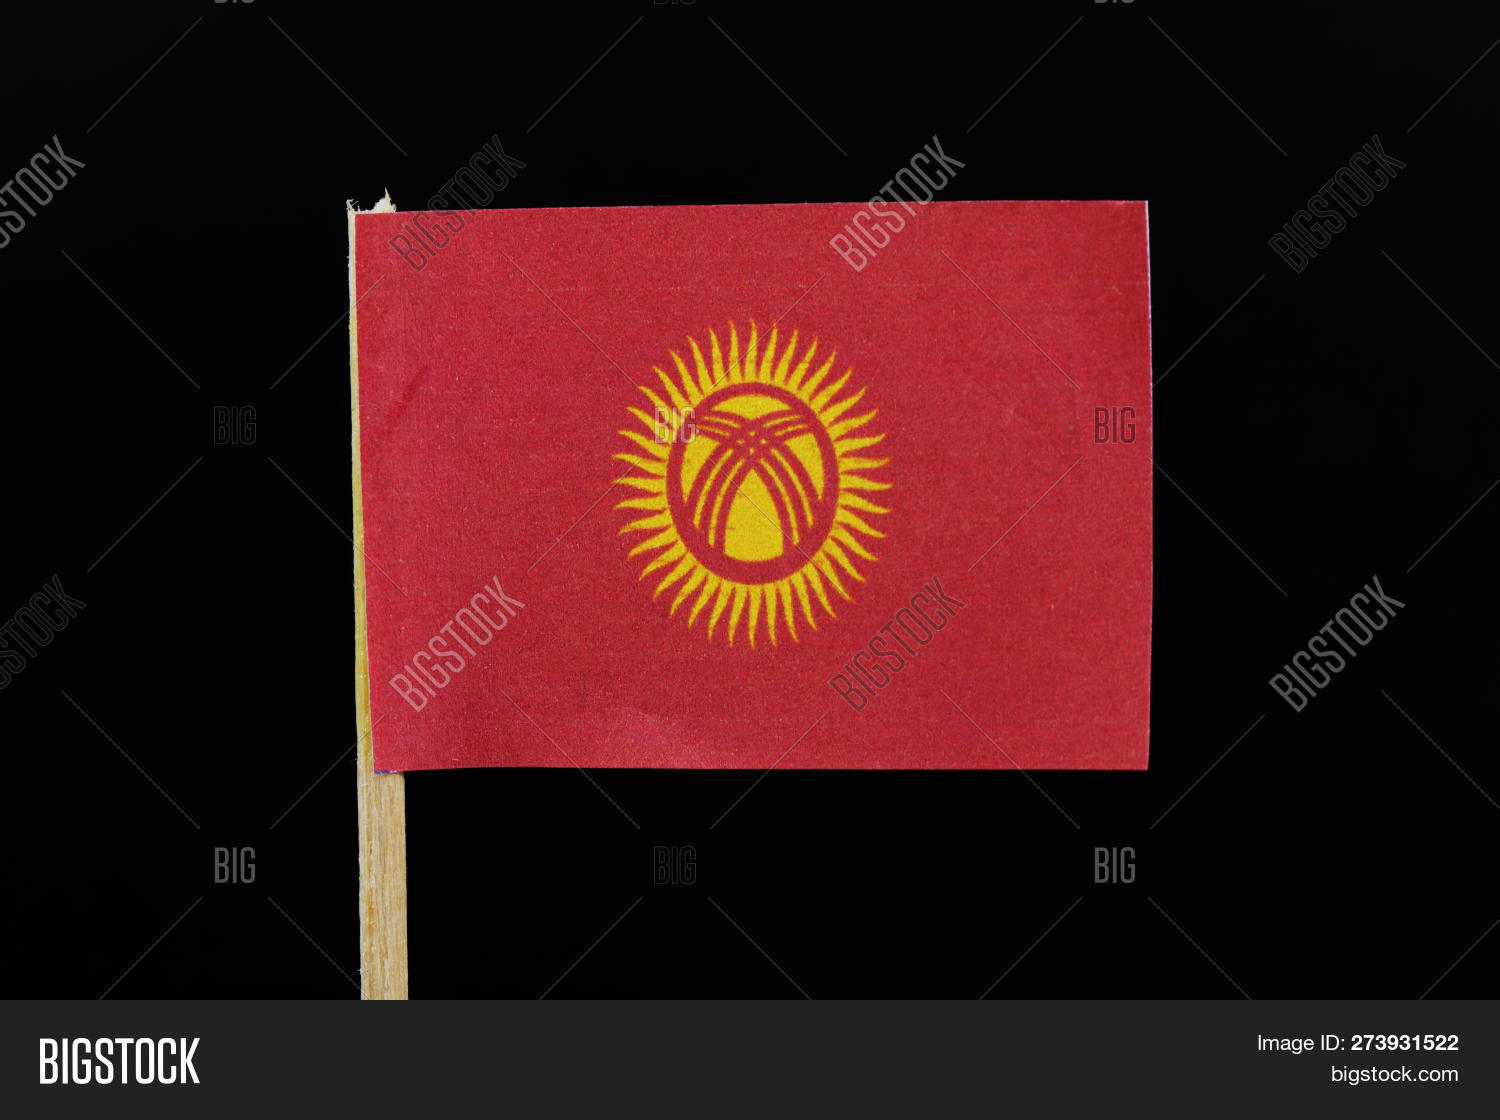 A official flag of Kyrgyzstan on toothpick on black background. A red field charged with a yellow sun with forty uniformly spaced rays; the sun is crossed by two sets of three lines.